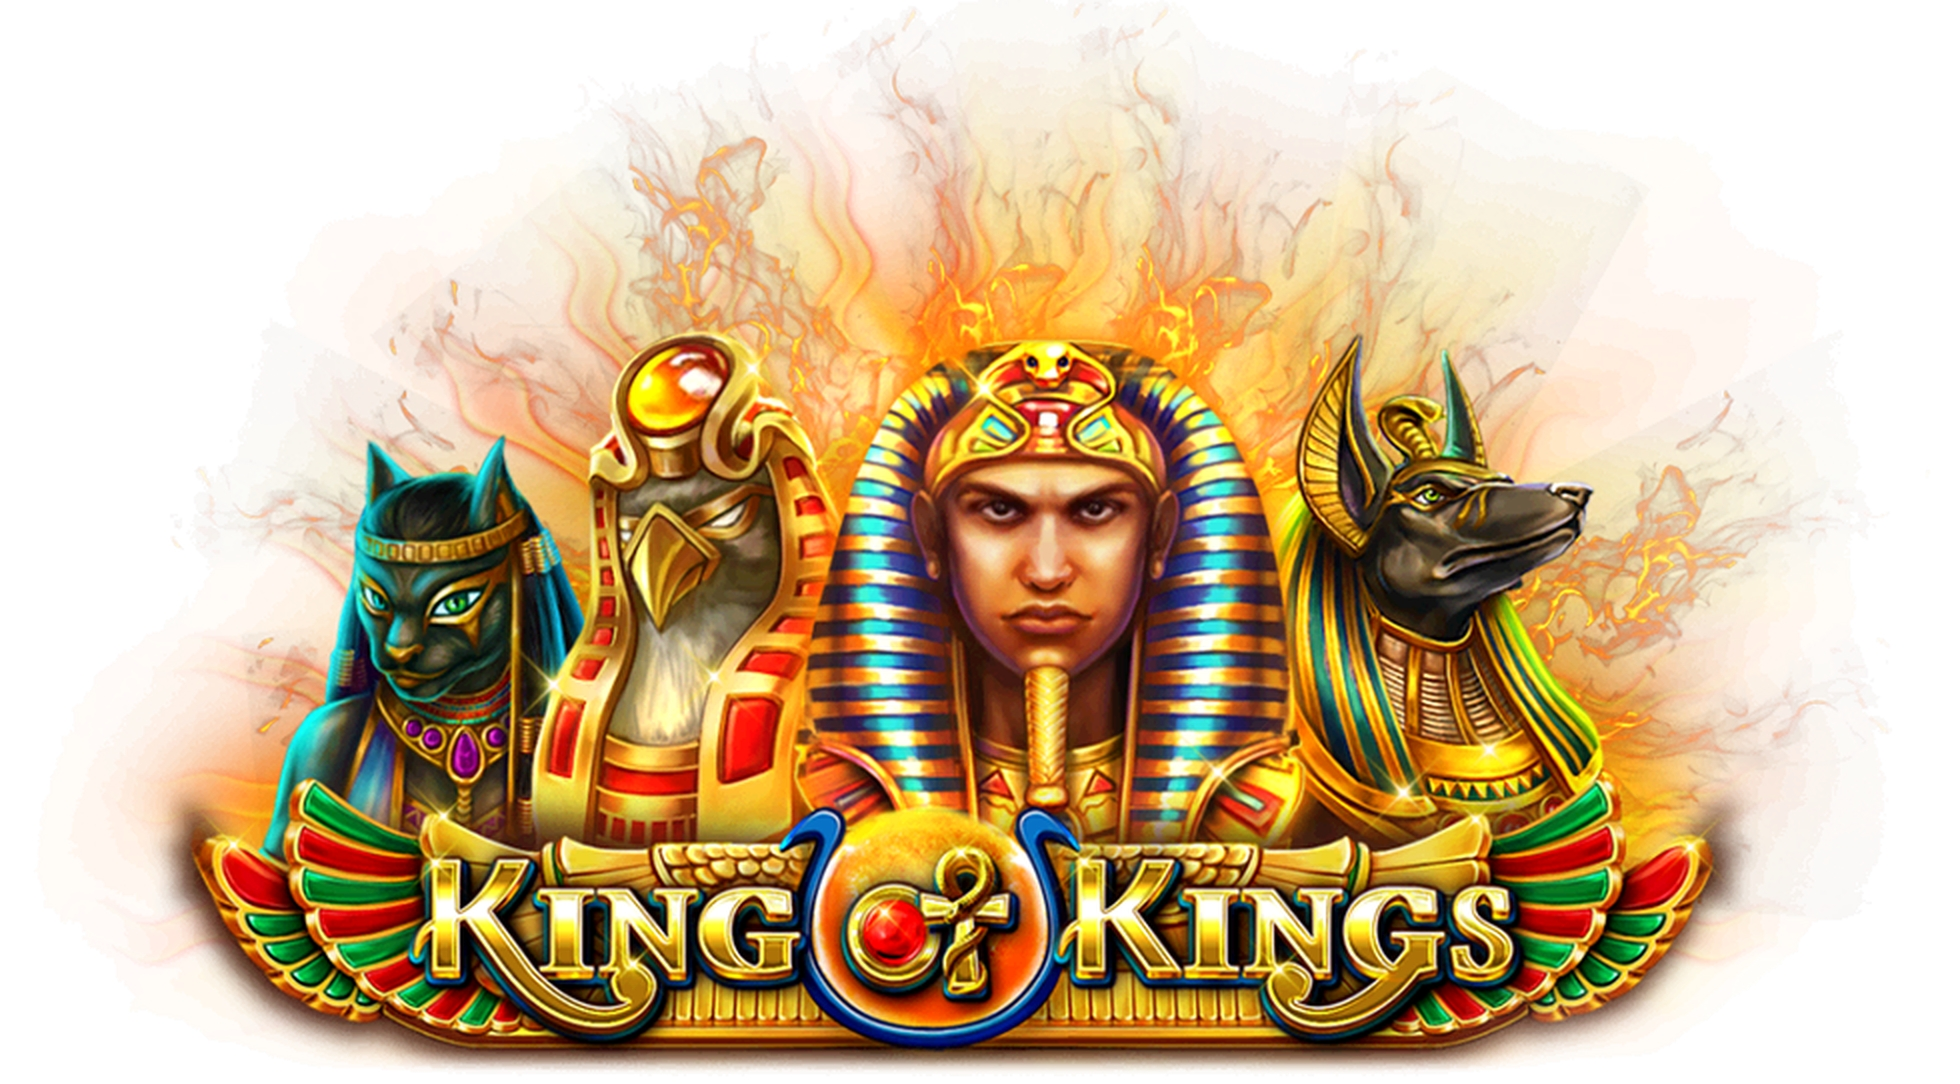 The King of Kings Online Slot Demo Game by Relax Gaming